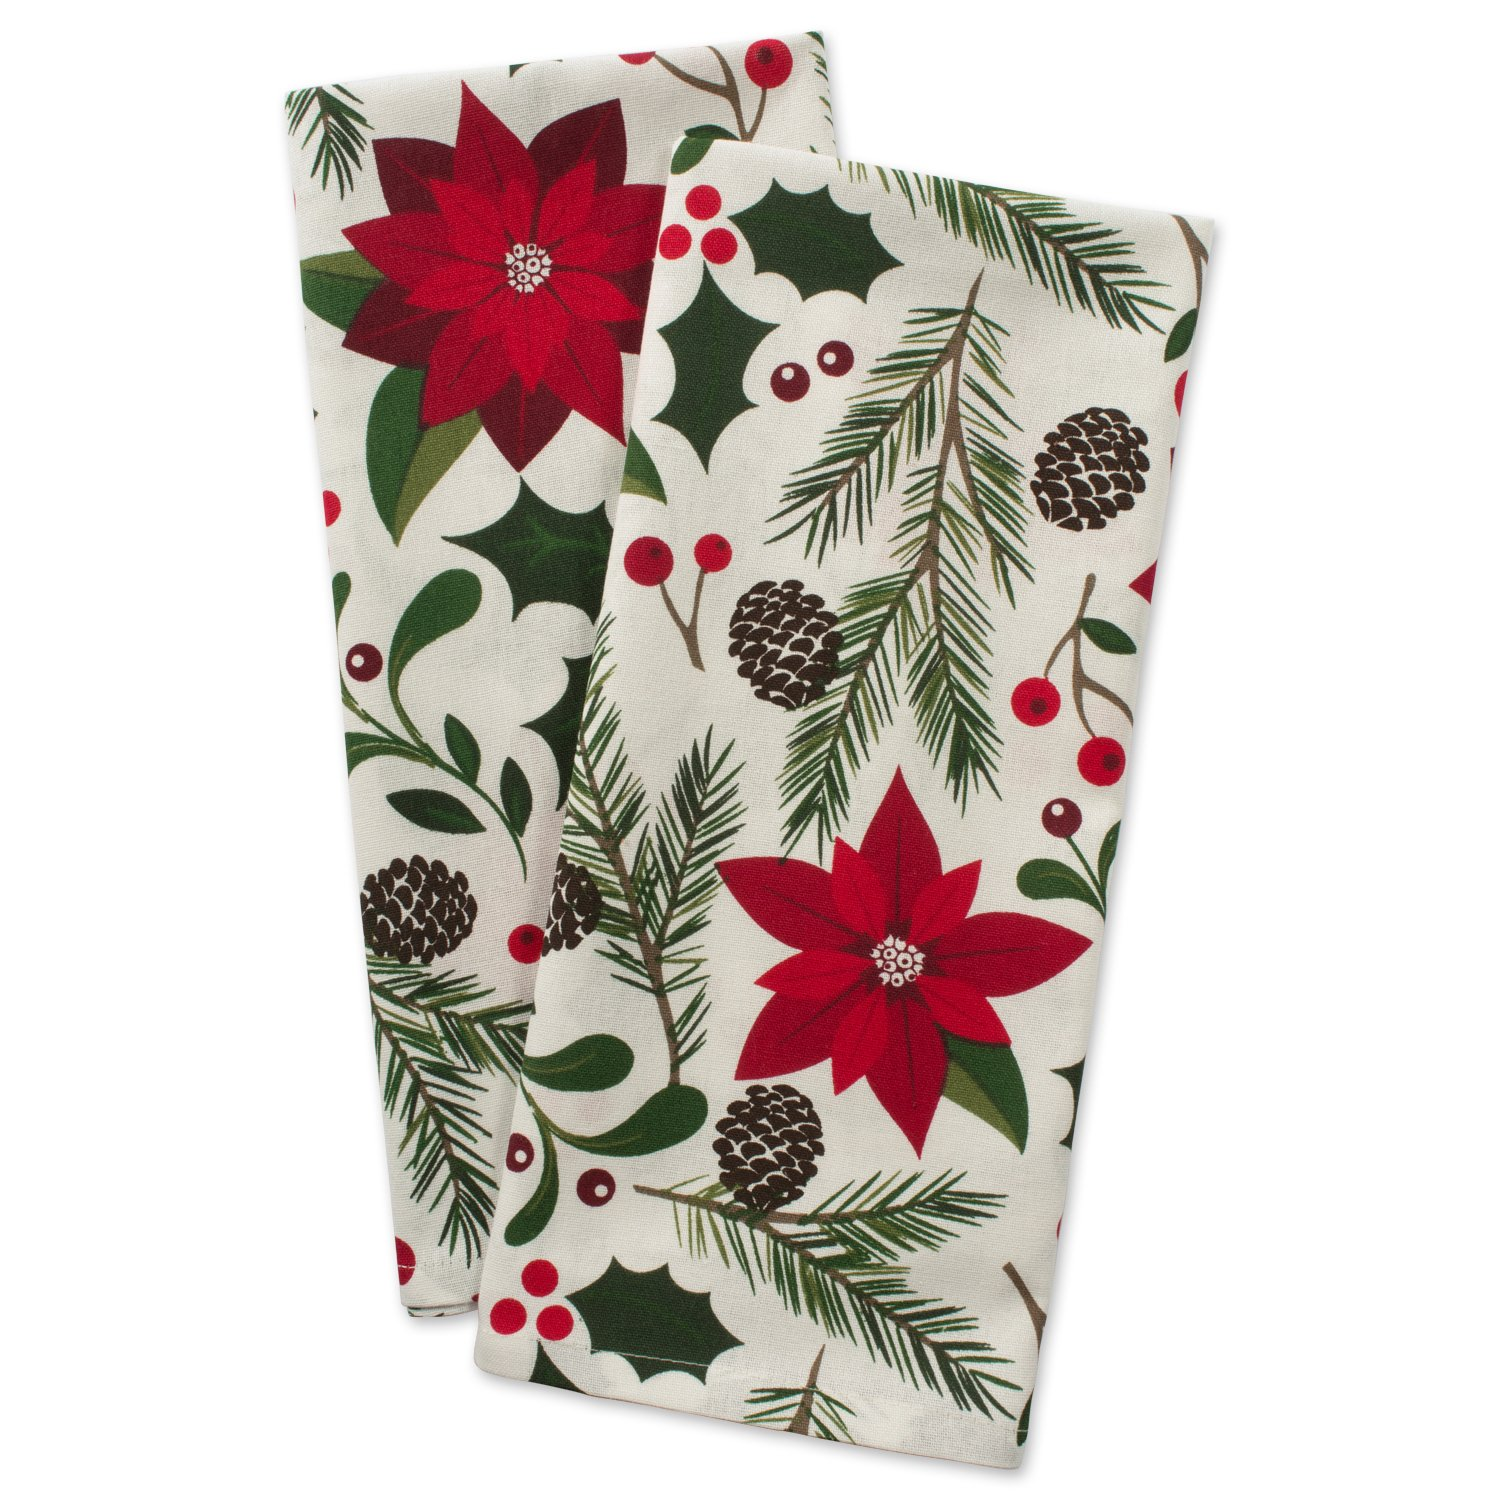 DII Cotton Decorative Christmas Dish Towel 18 x 28 Set of 2, Oversized Kitchen Dish Towels, Perfect Holiday, Hostee, Housewarming Gift-Woodland